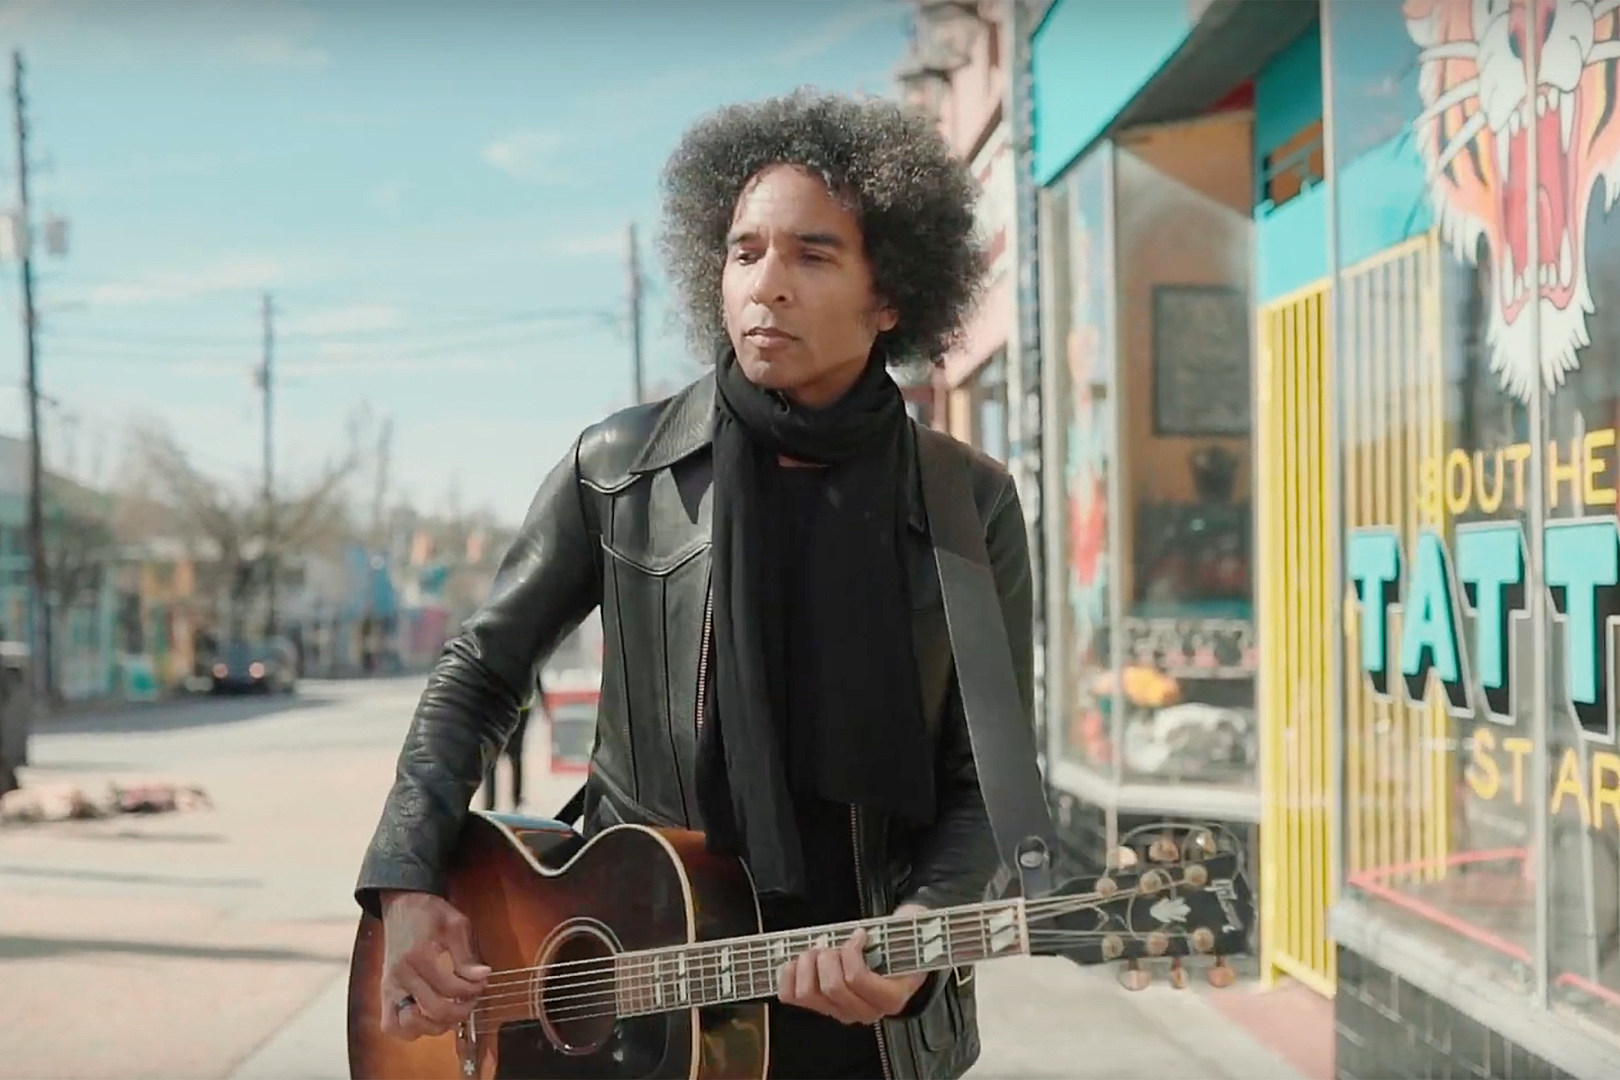 Alice in Chains Singer William DuVall Reveals Solo Album Plans + New Song